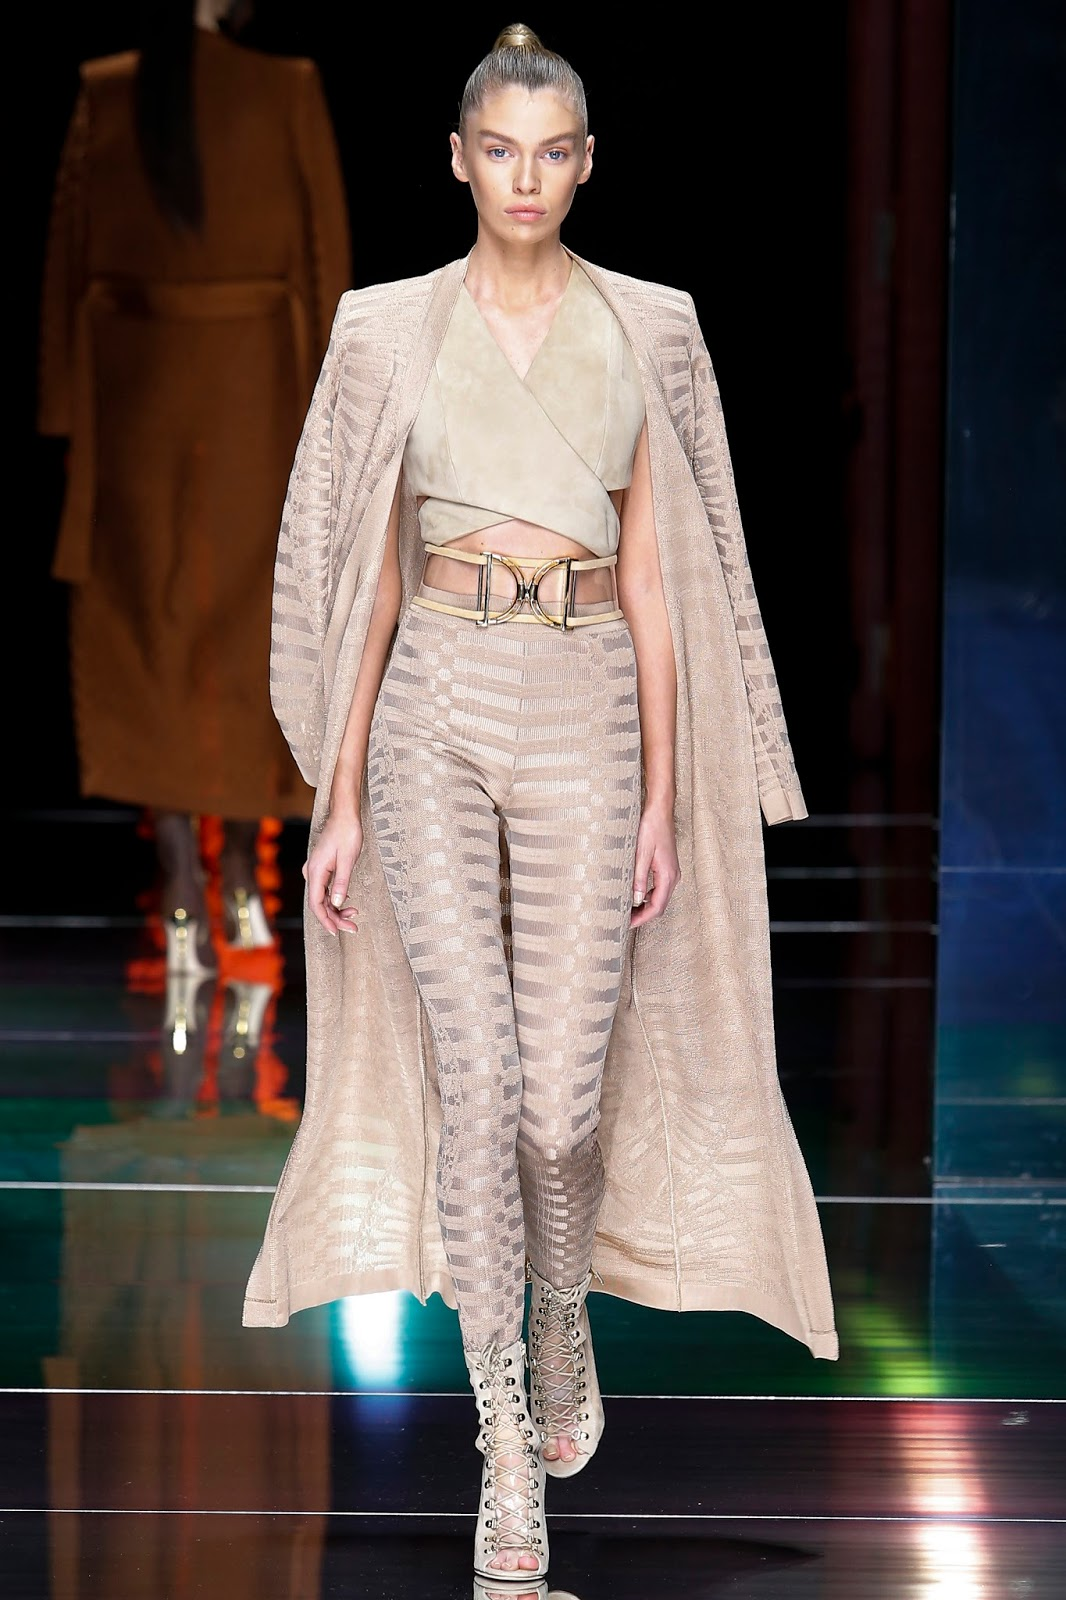 Paris Fashion Week, Spring 2016, Ready to Wear, pfw, rtw, runway fashion, balmain, suede